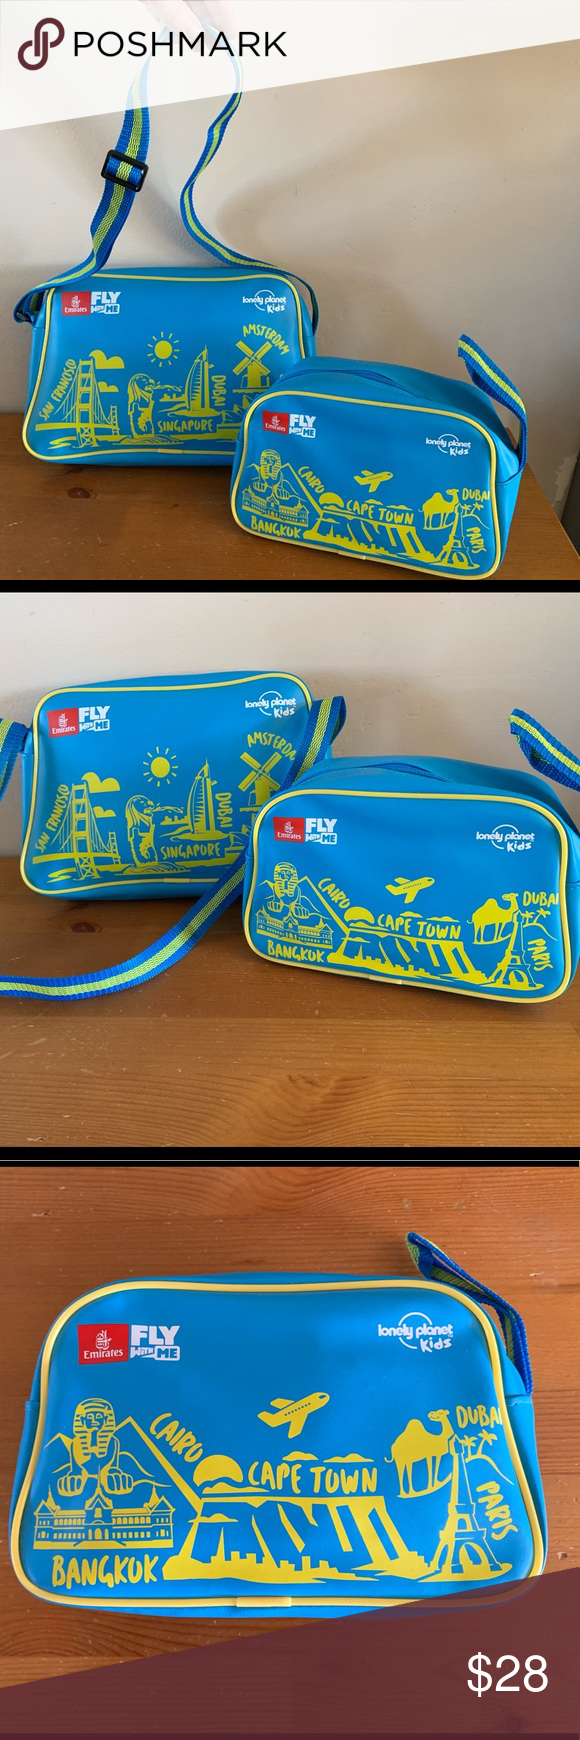 Emirates Airline Kids Fly With Me Travel Bag Set Emirates